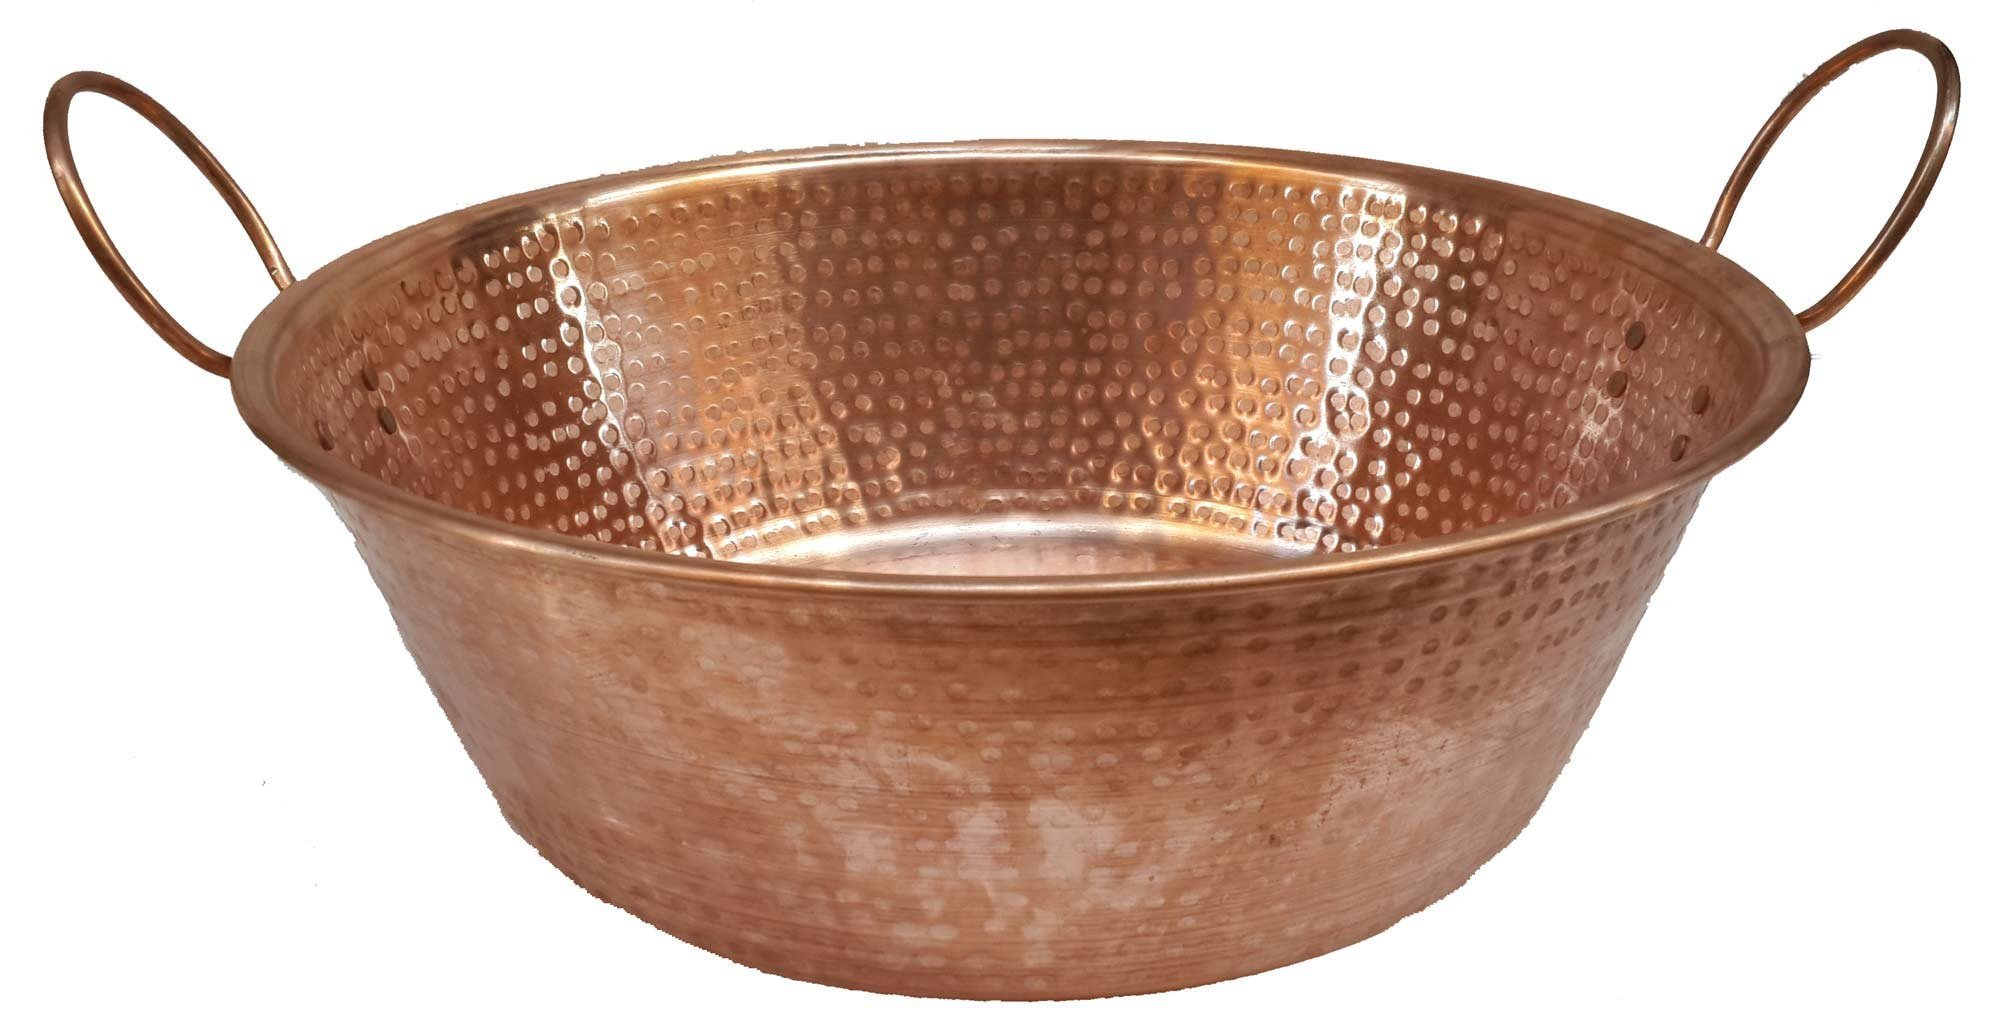 Egypt gift shops Polished Copper Basin Foot Massage Relaxing Soothing Therapy Pedicure Spa Bride Beauty Salon